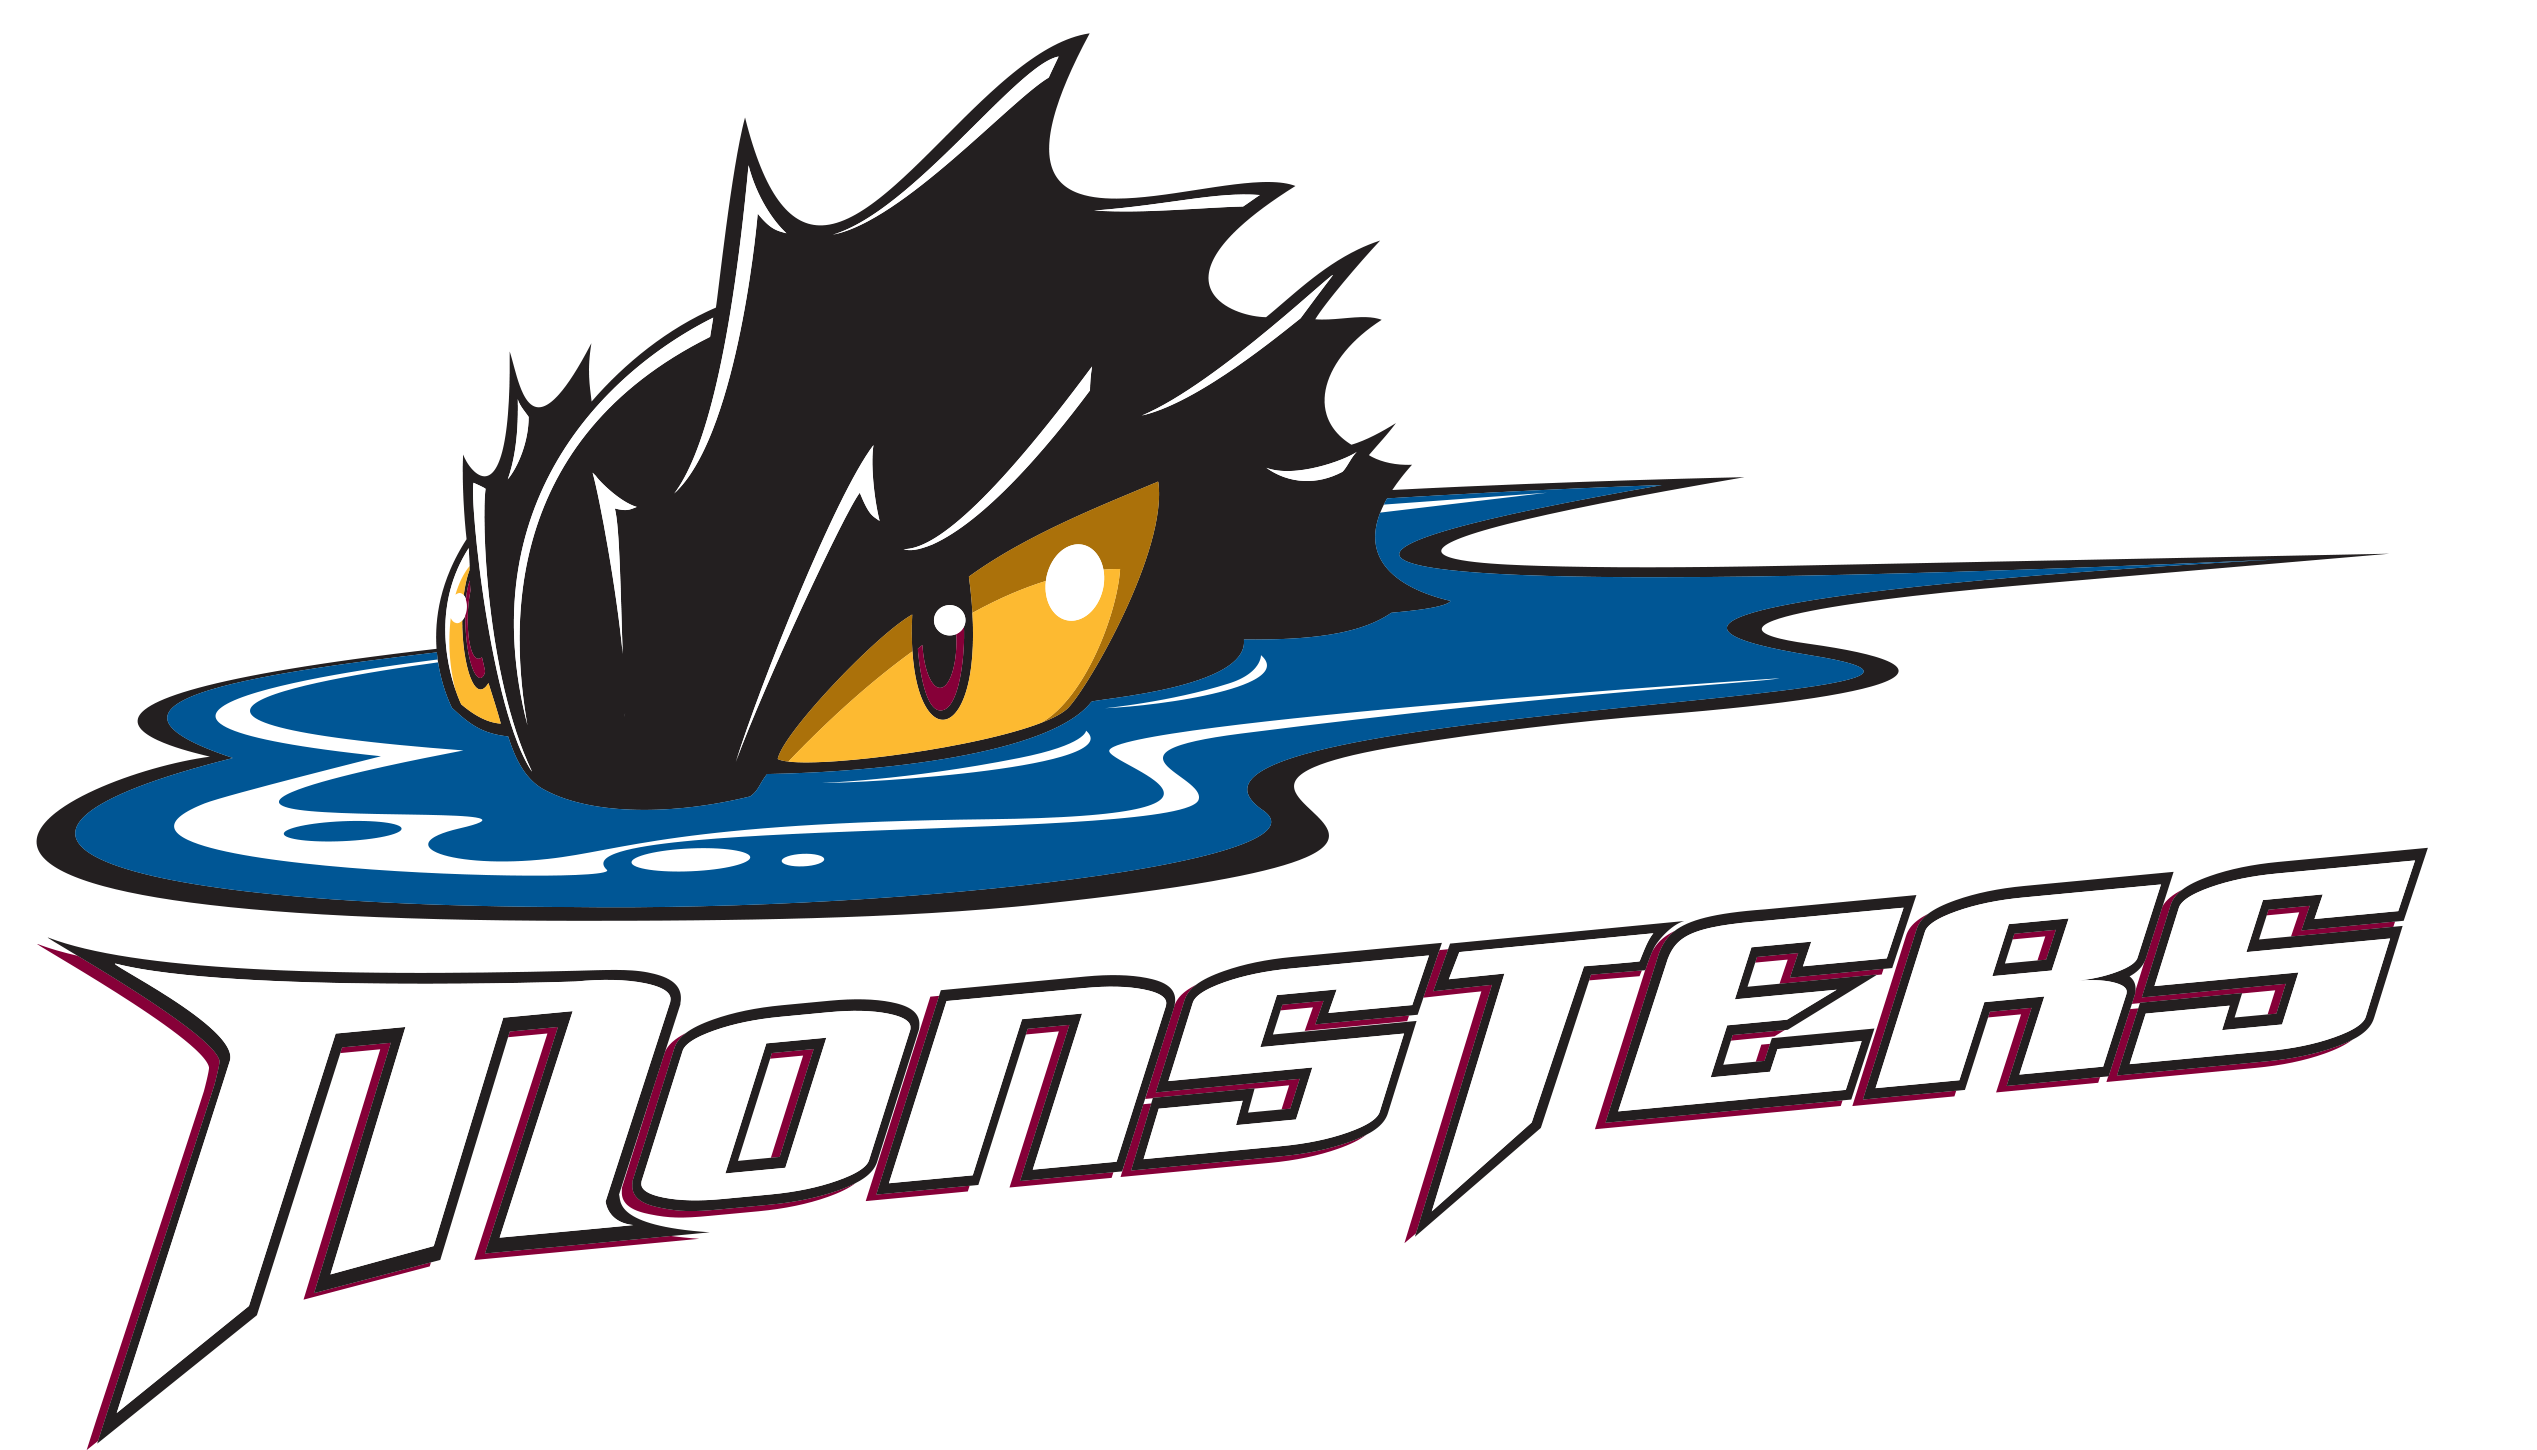 Cleveland Monsters Hockey Logo